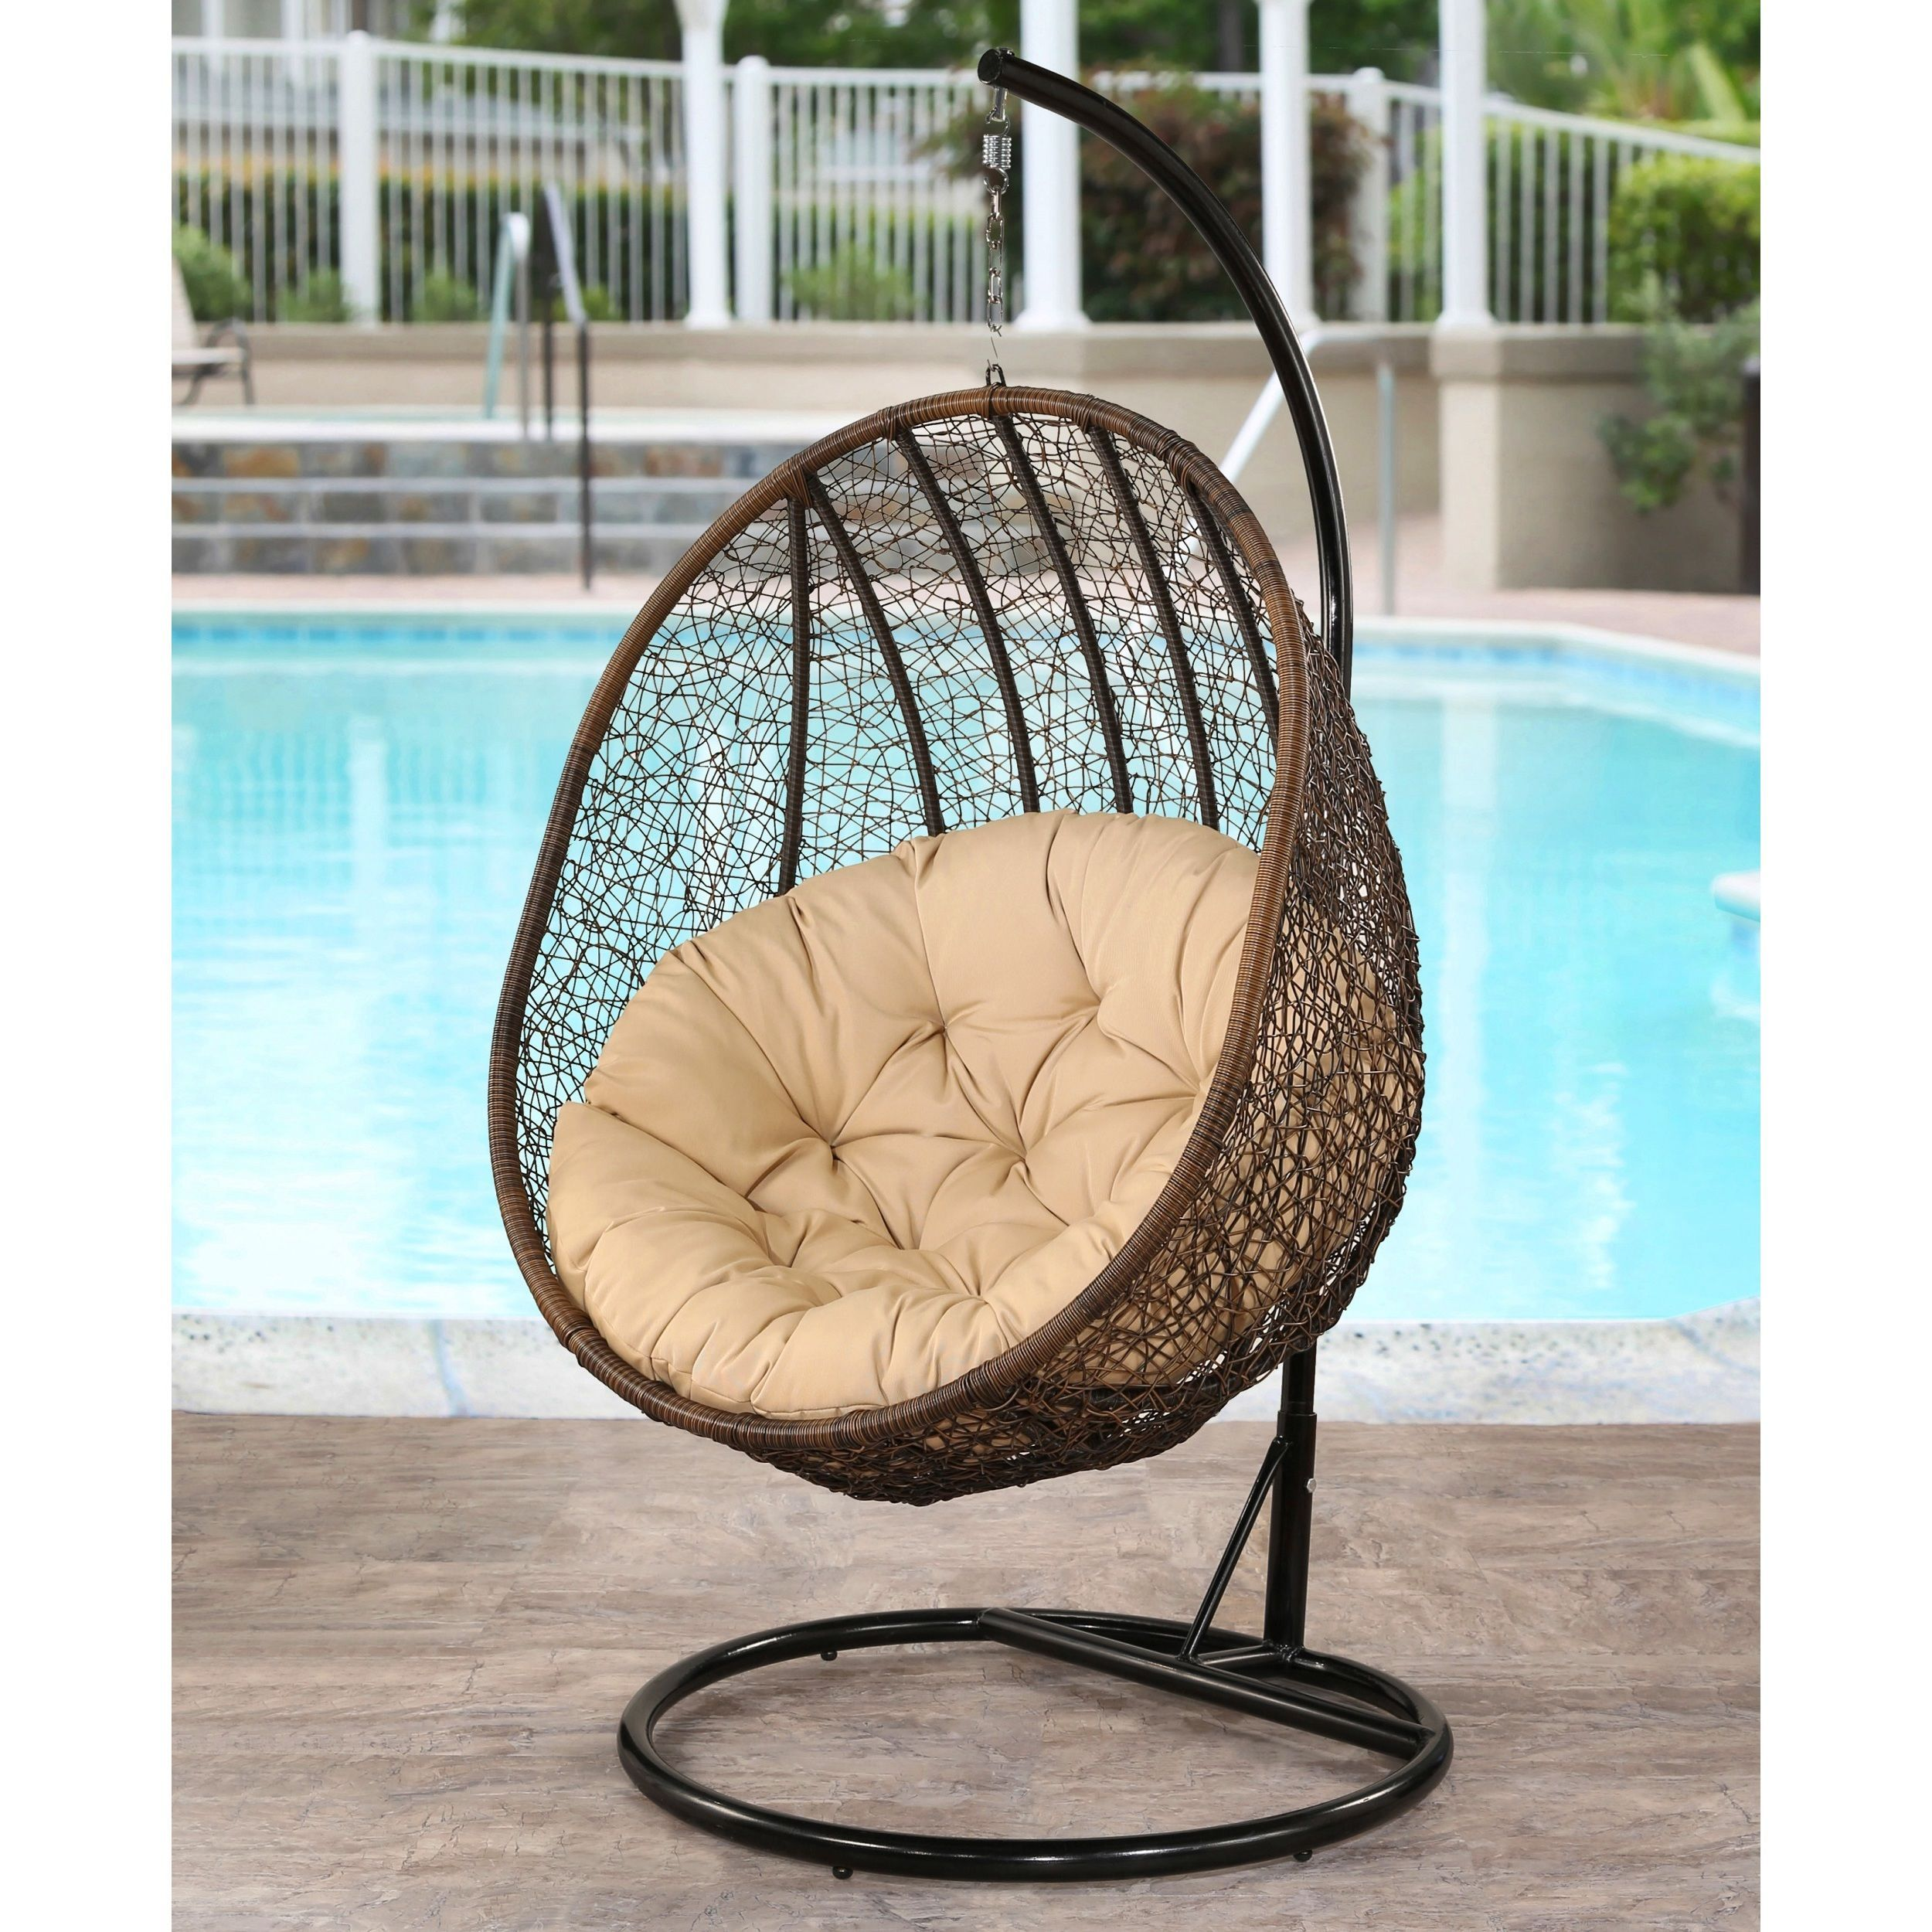 stirling garden swing product single circle hammock en b studio chairs hanging by from swinging chair recliner